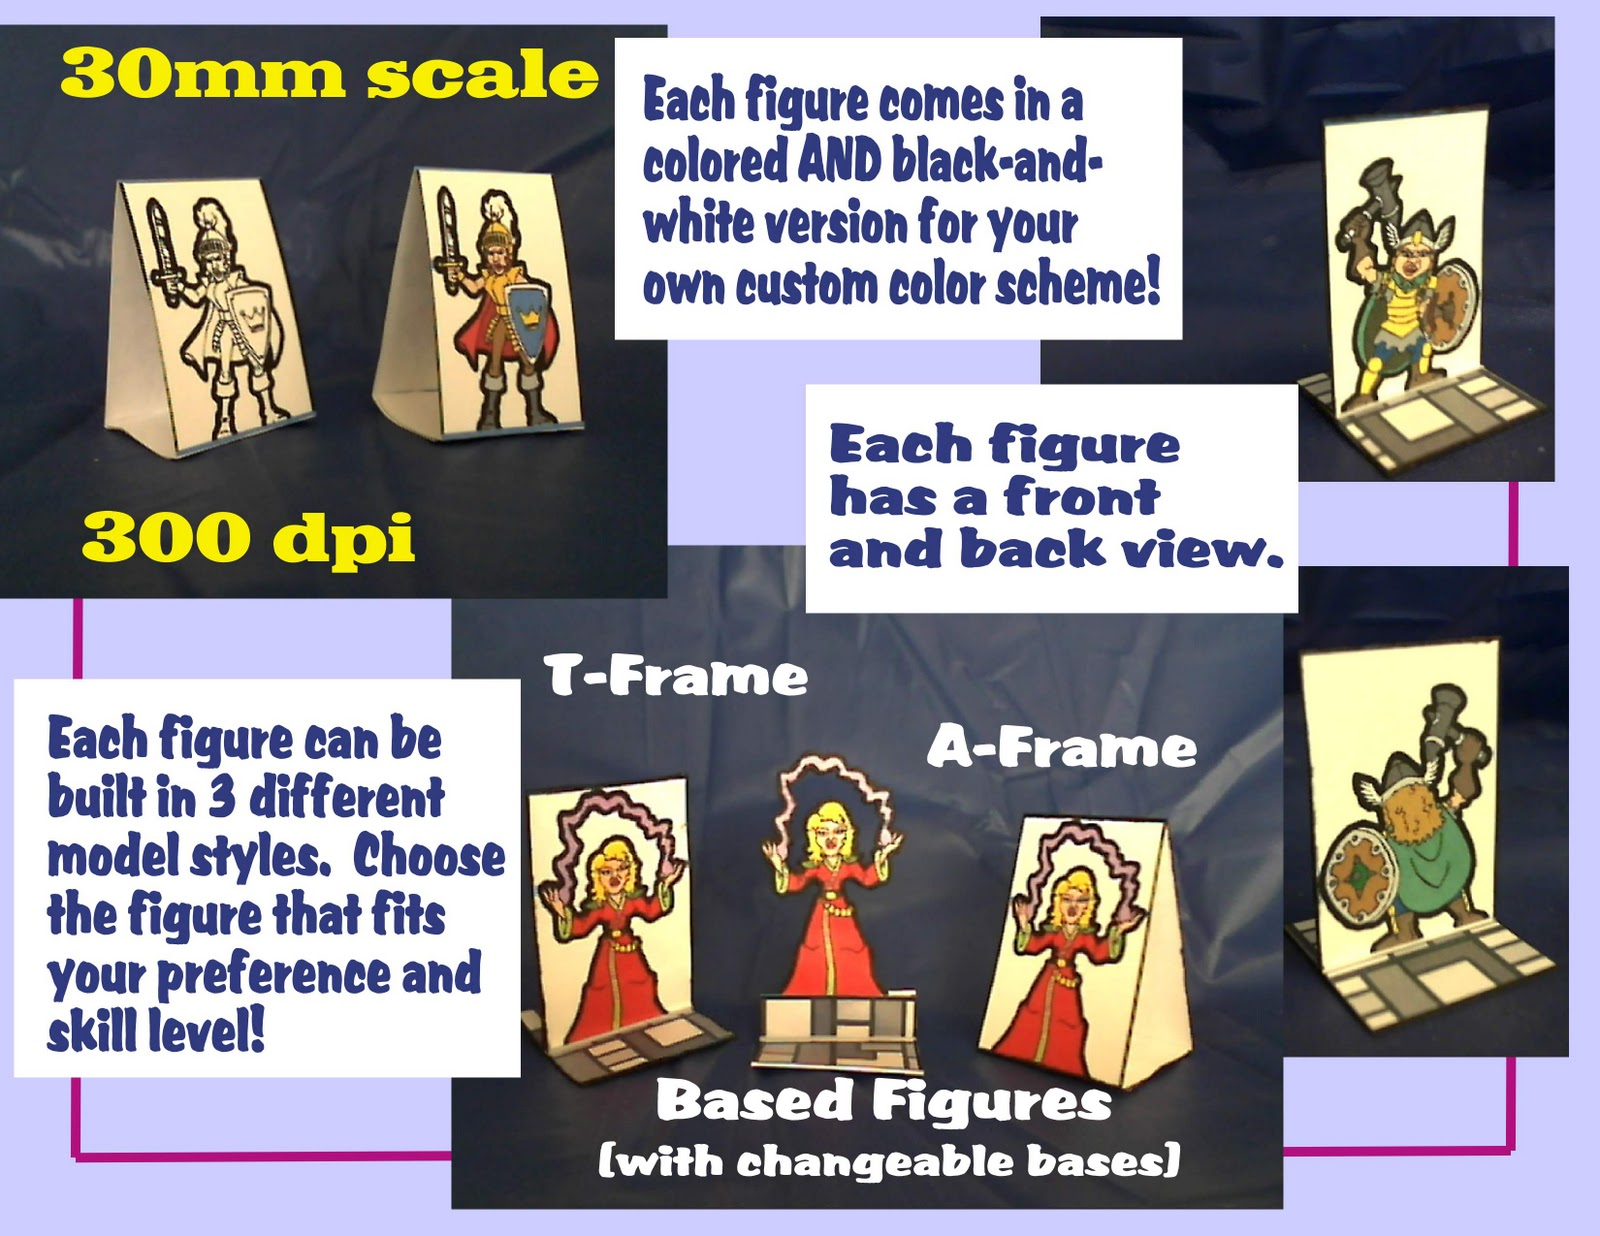 photograph about Printable Paper Miniatures named Fantanomicon Thrust: Printable Pawns